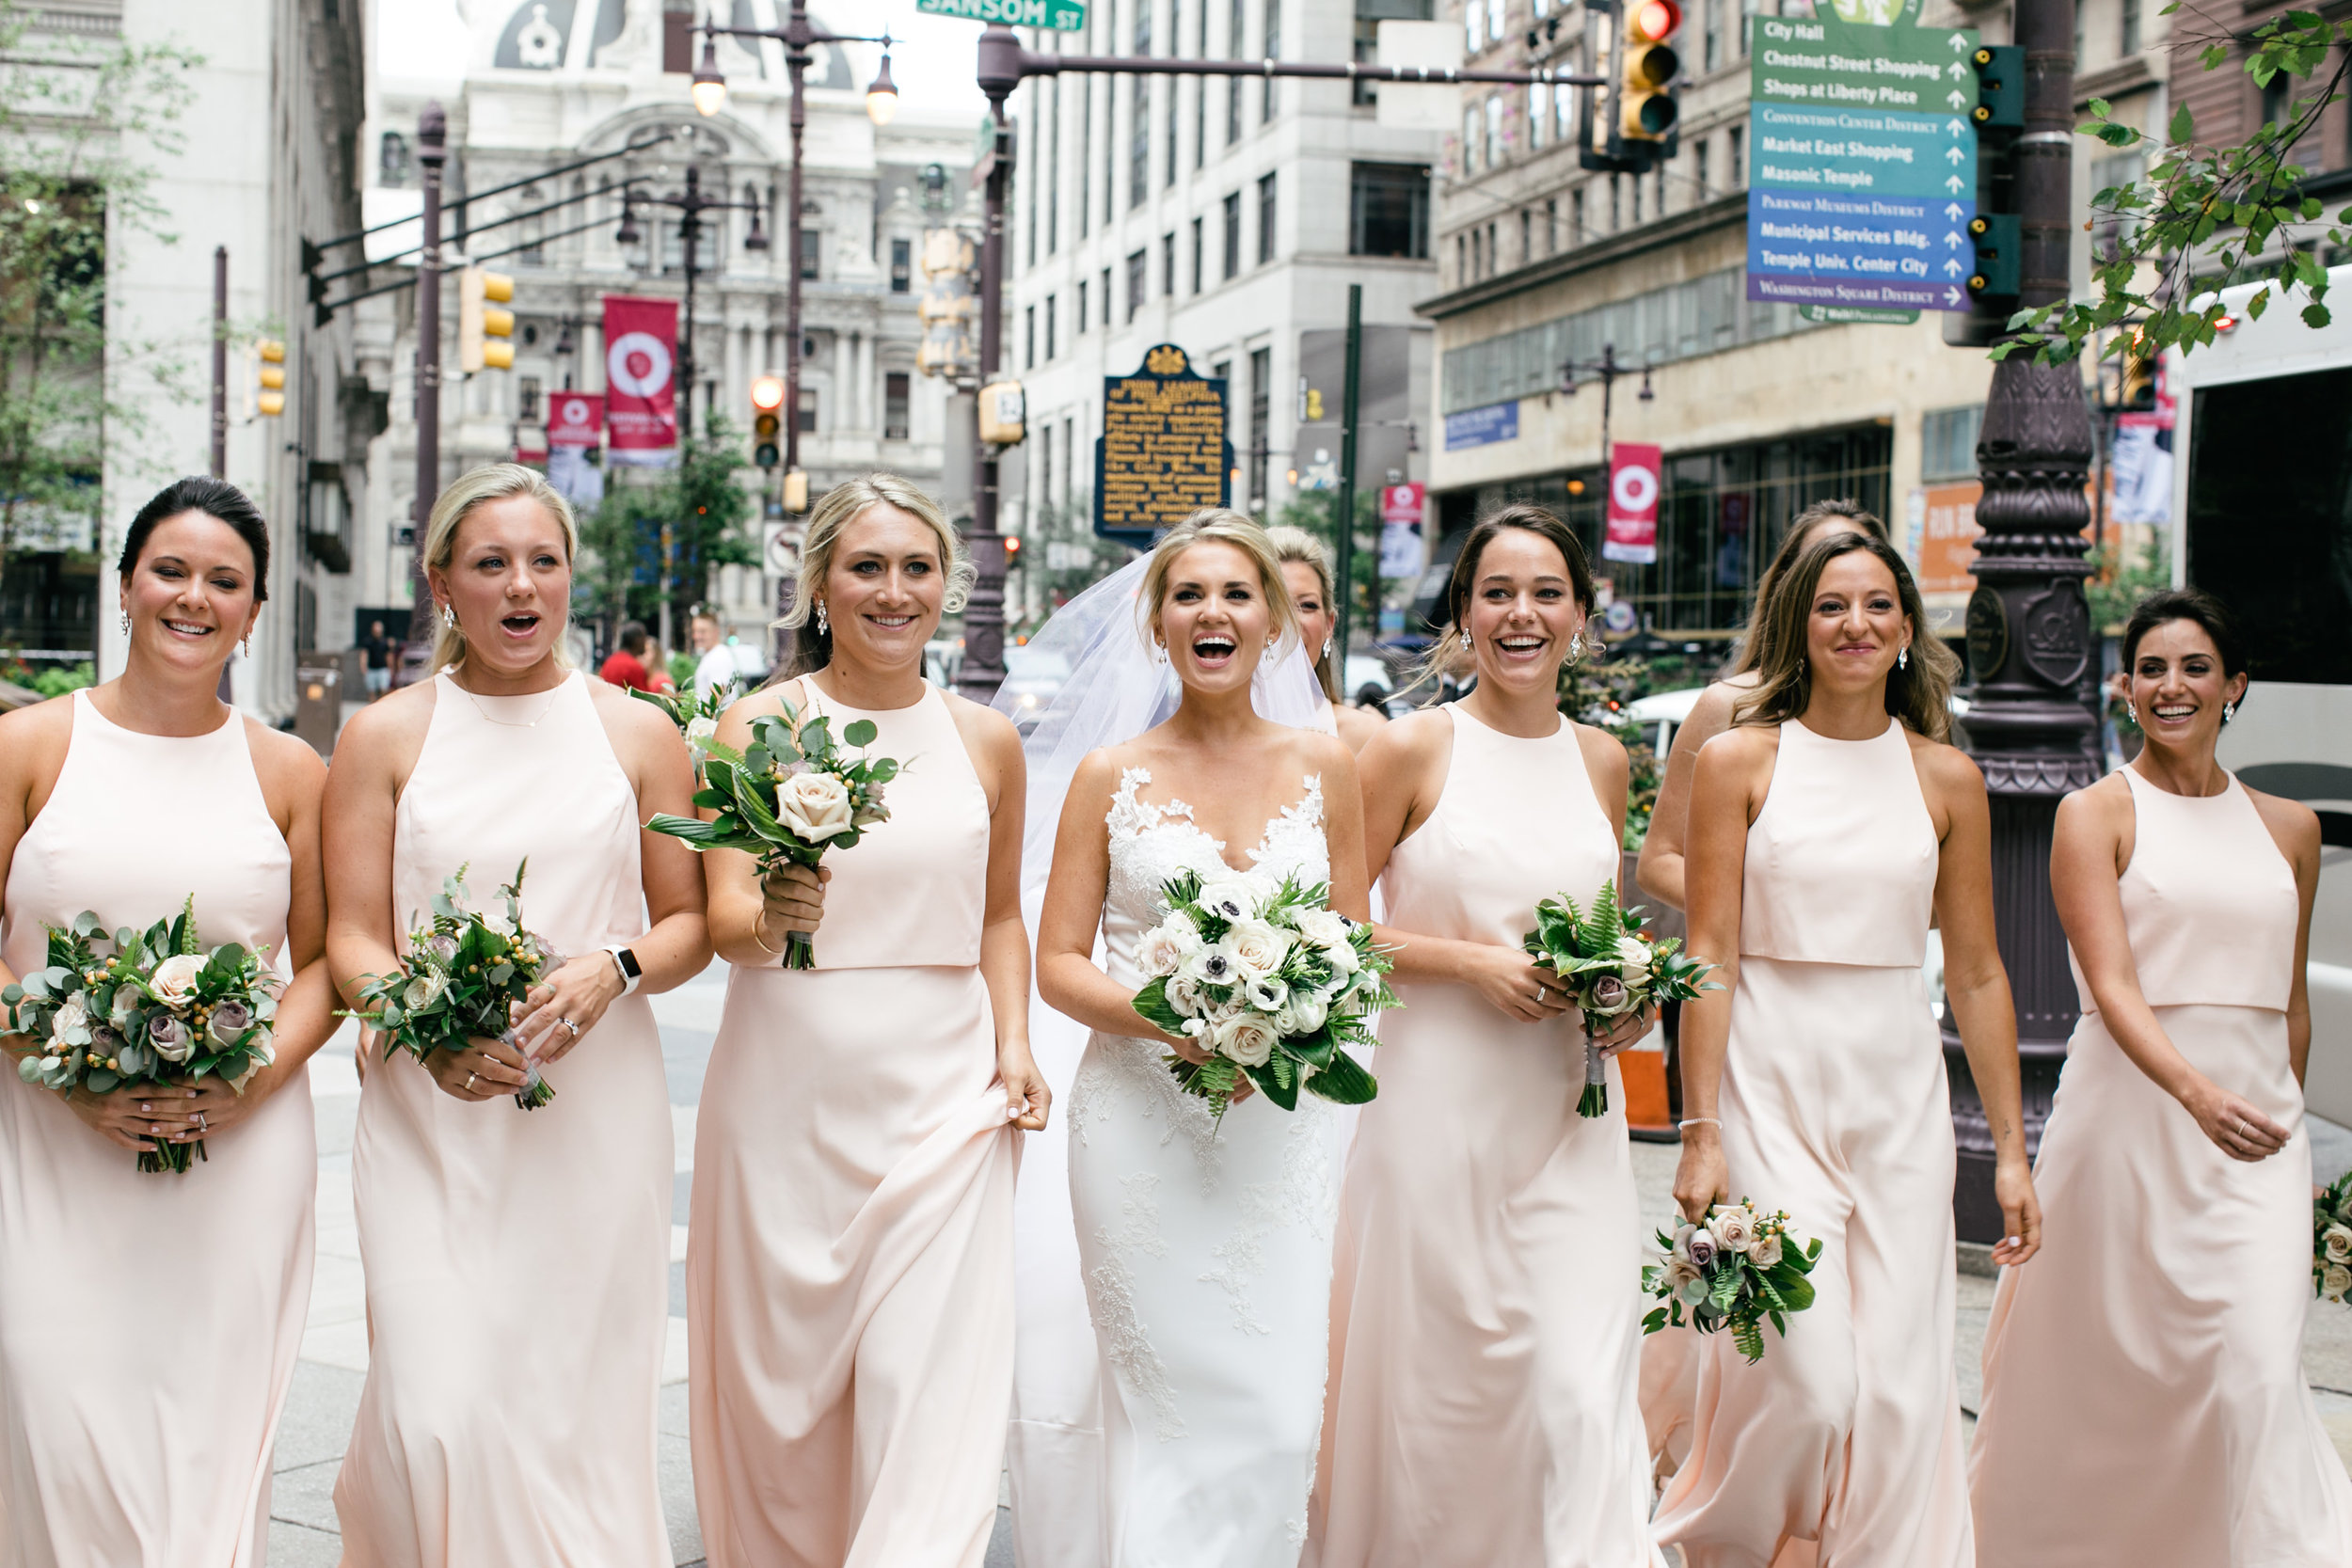 photography-wedding-weddings-natural-candid-union league-philadelphia-black tie-city hall-broad street-editorial-modern-fine-art-28.JPG